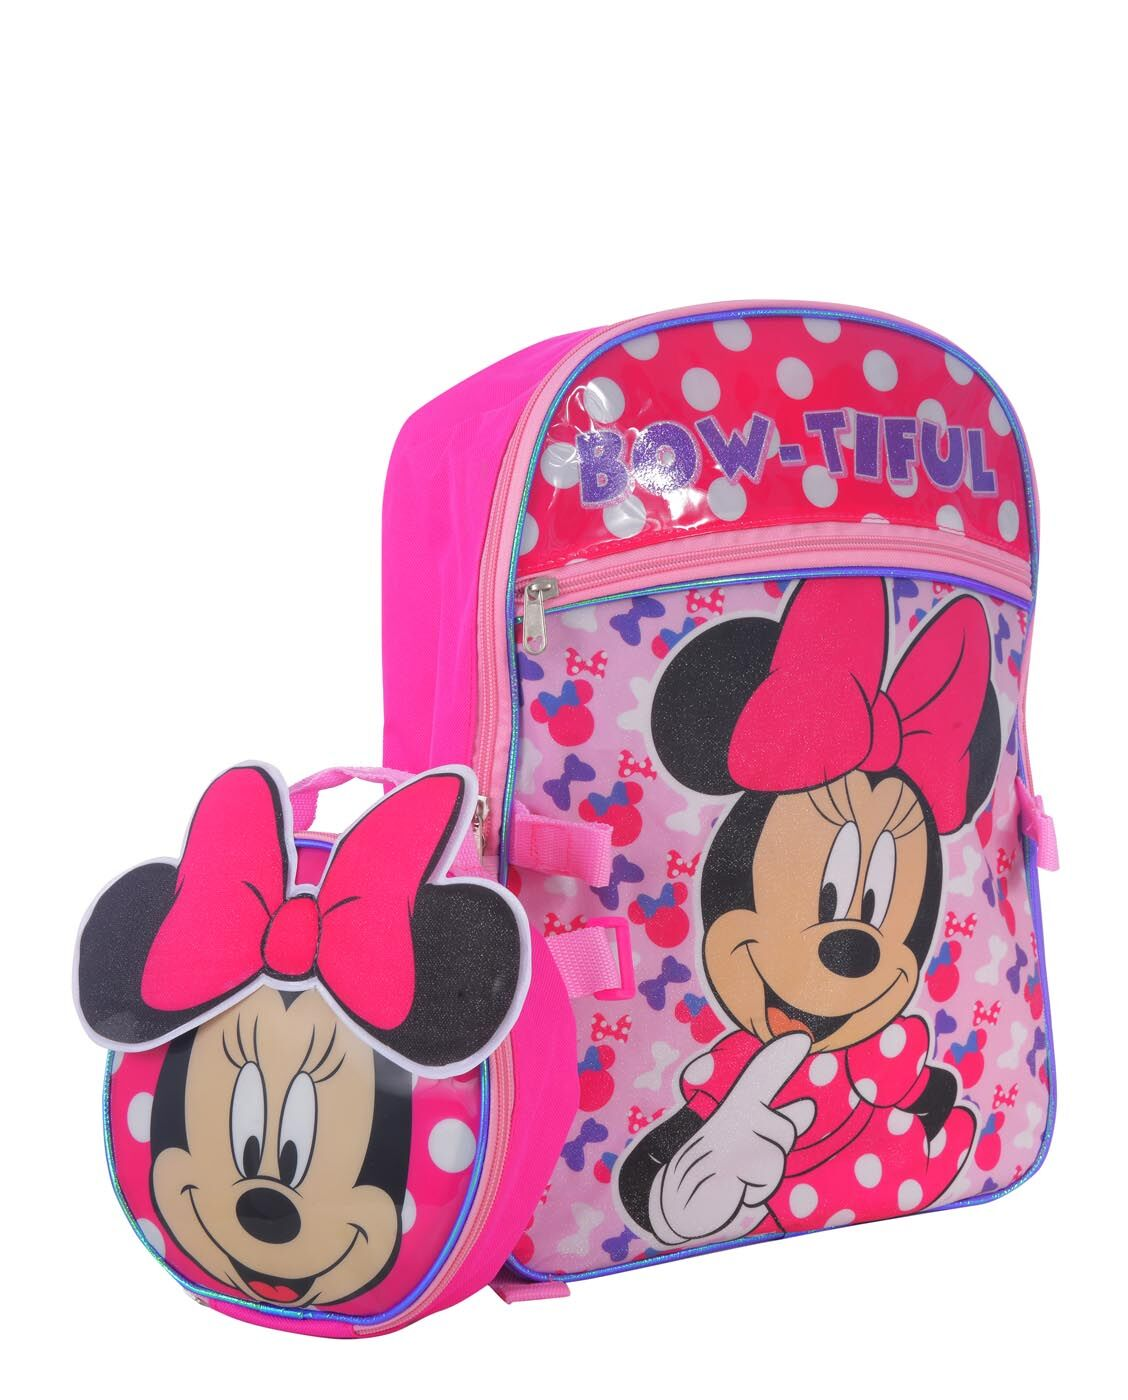 DISNEY MINNIE MOUSE BACKPACK WITH BOW LUNCH BAG